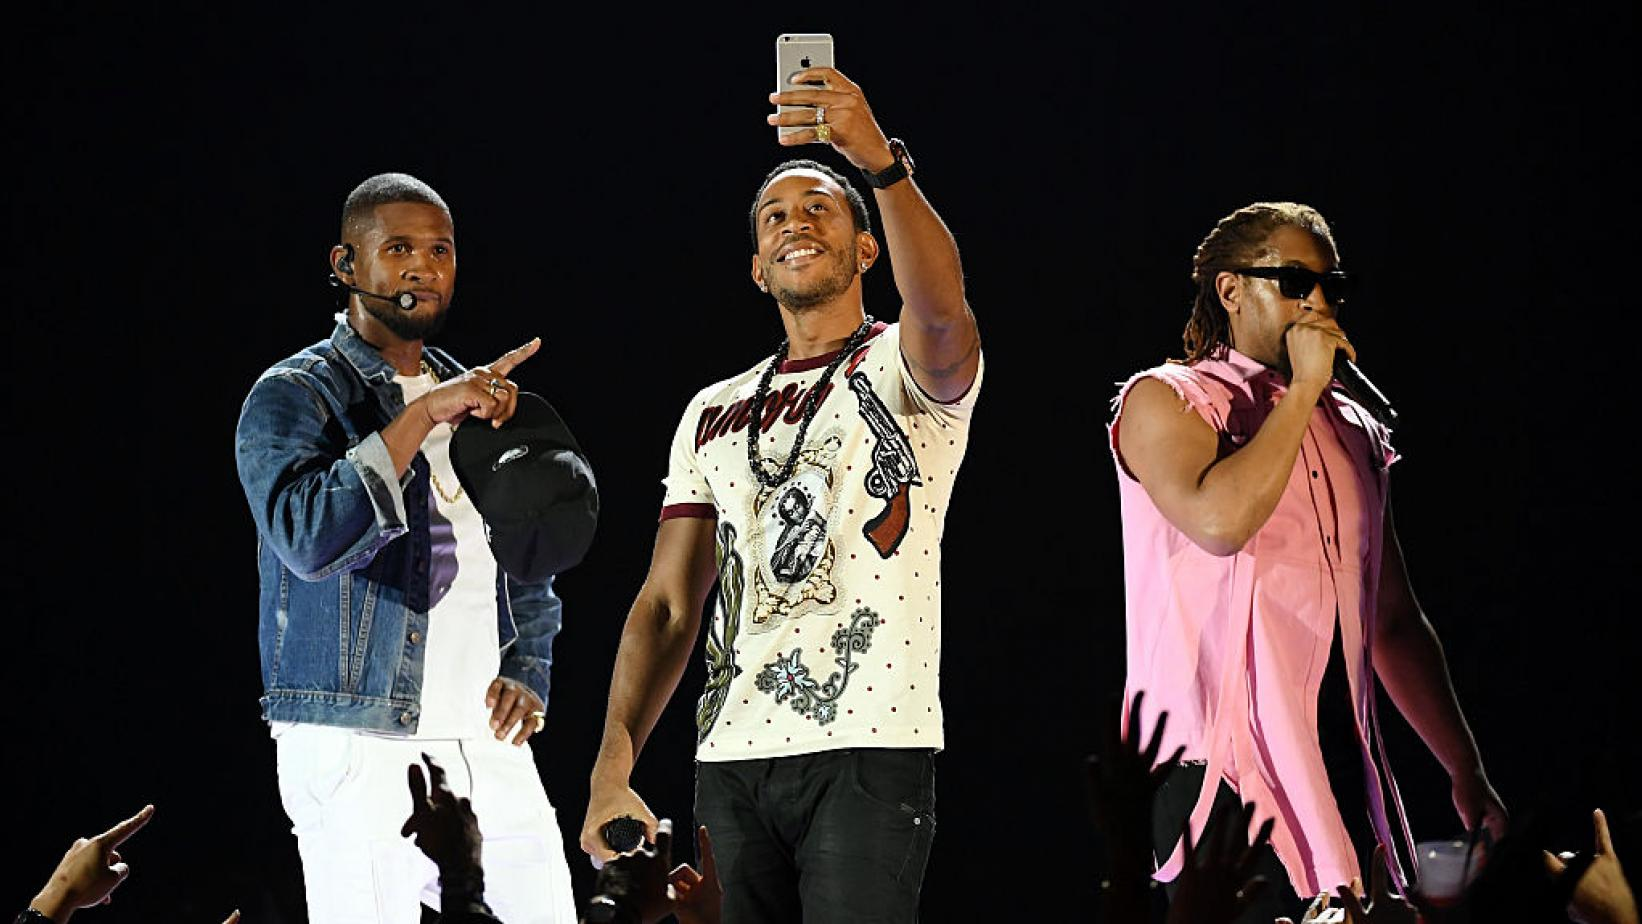 (L-R) Usher, Ludacris and Lil Jon perform at the 2016 iHeartRadio Music Festival